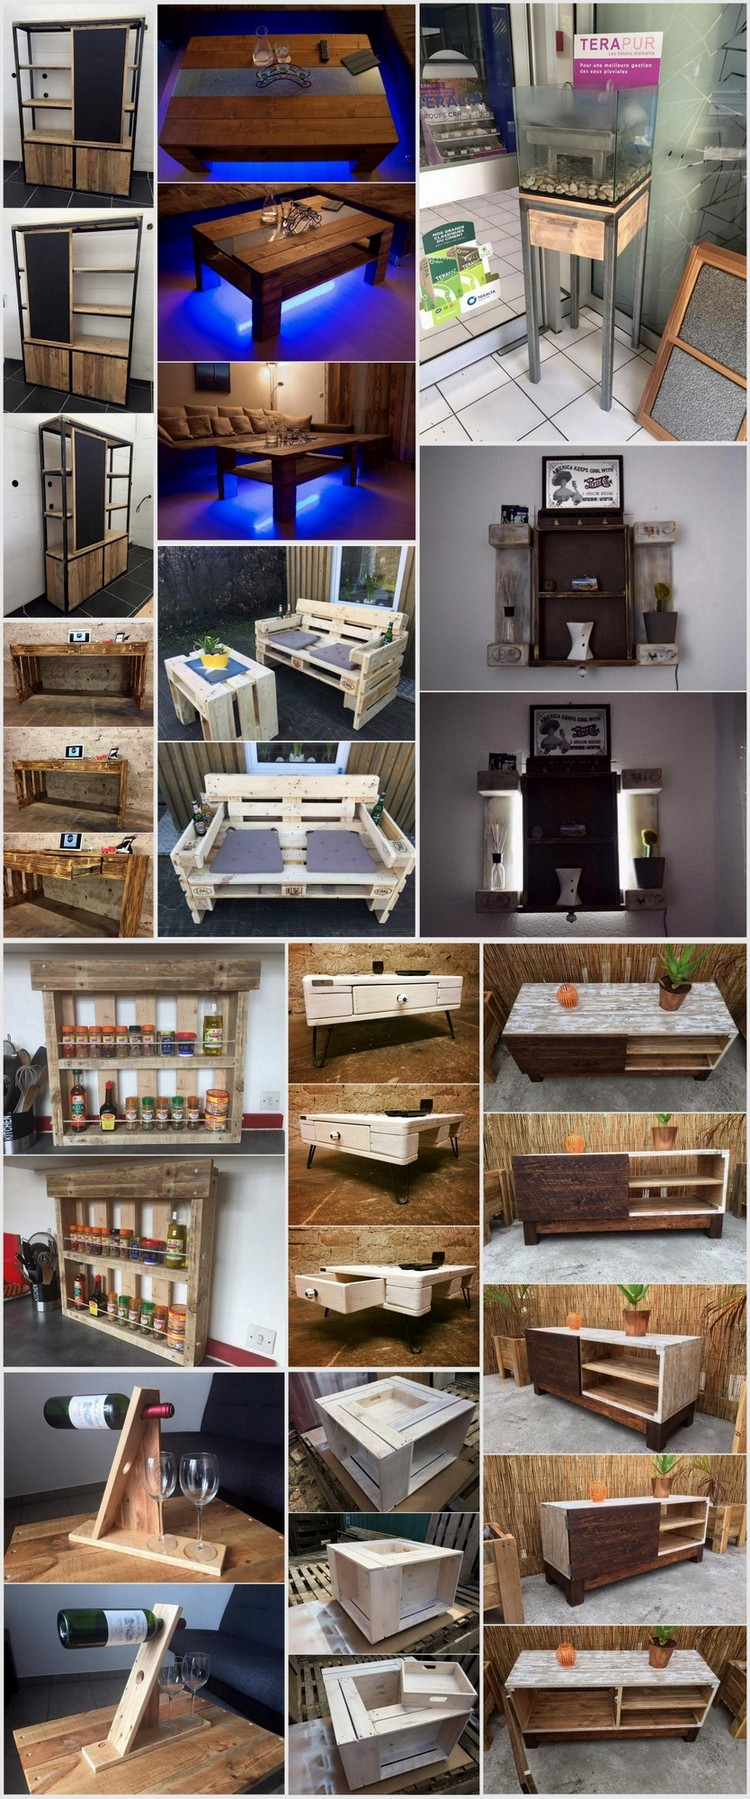 Wonderful Pallet Wood Furniture Ideas That Are Easy to Make